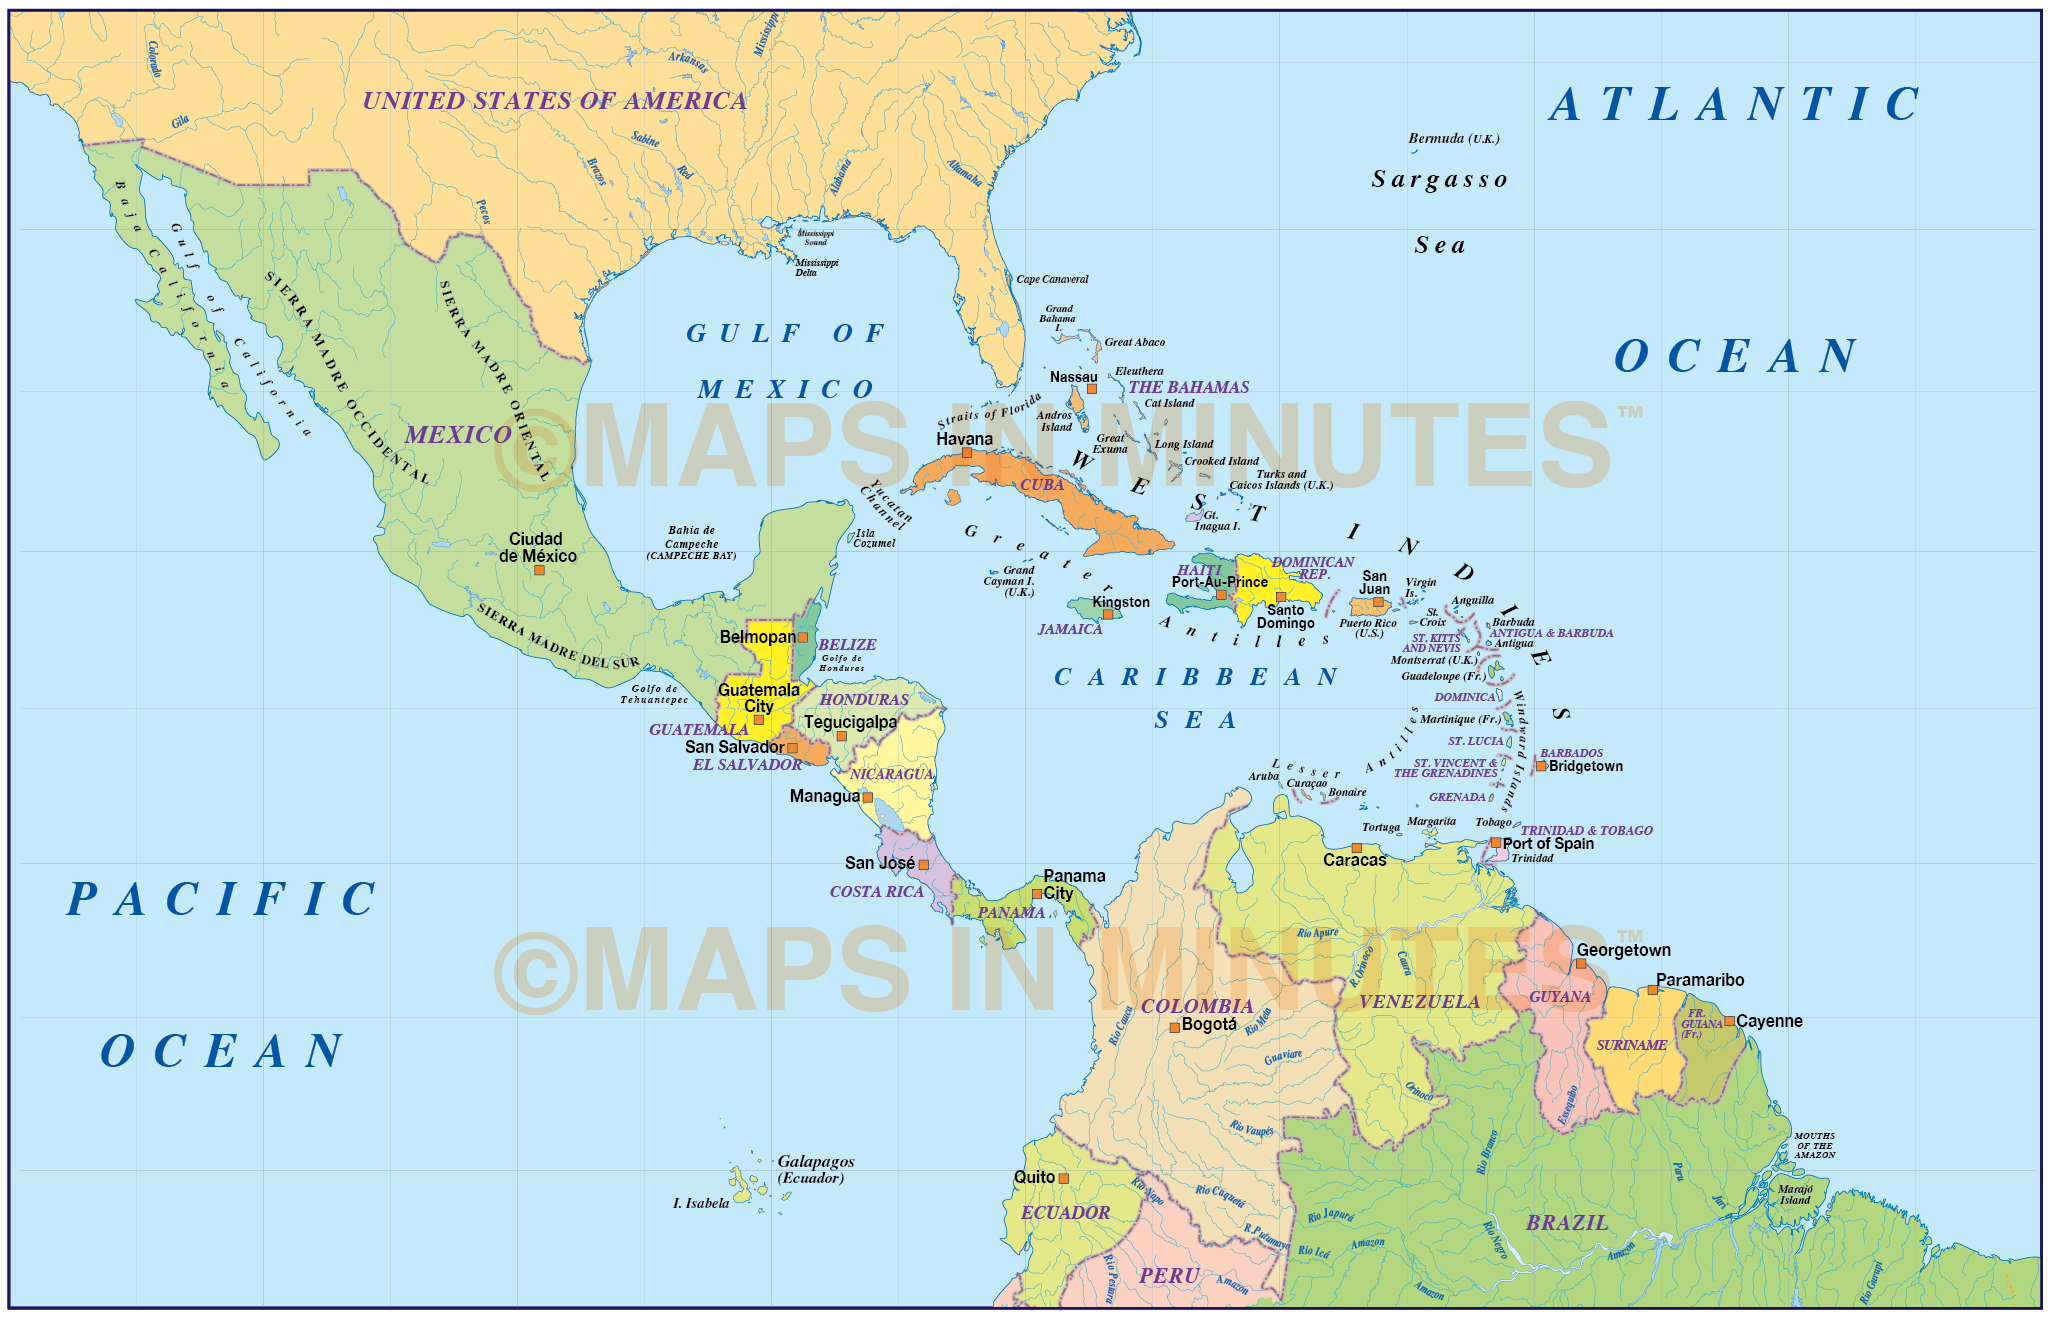 Digital Vector Central America & Caribbean Basic Political Map @10m Scale In Illustrator And Pdf